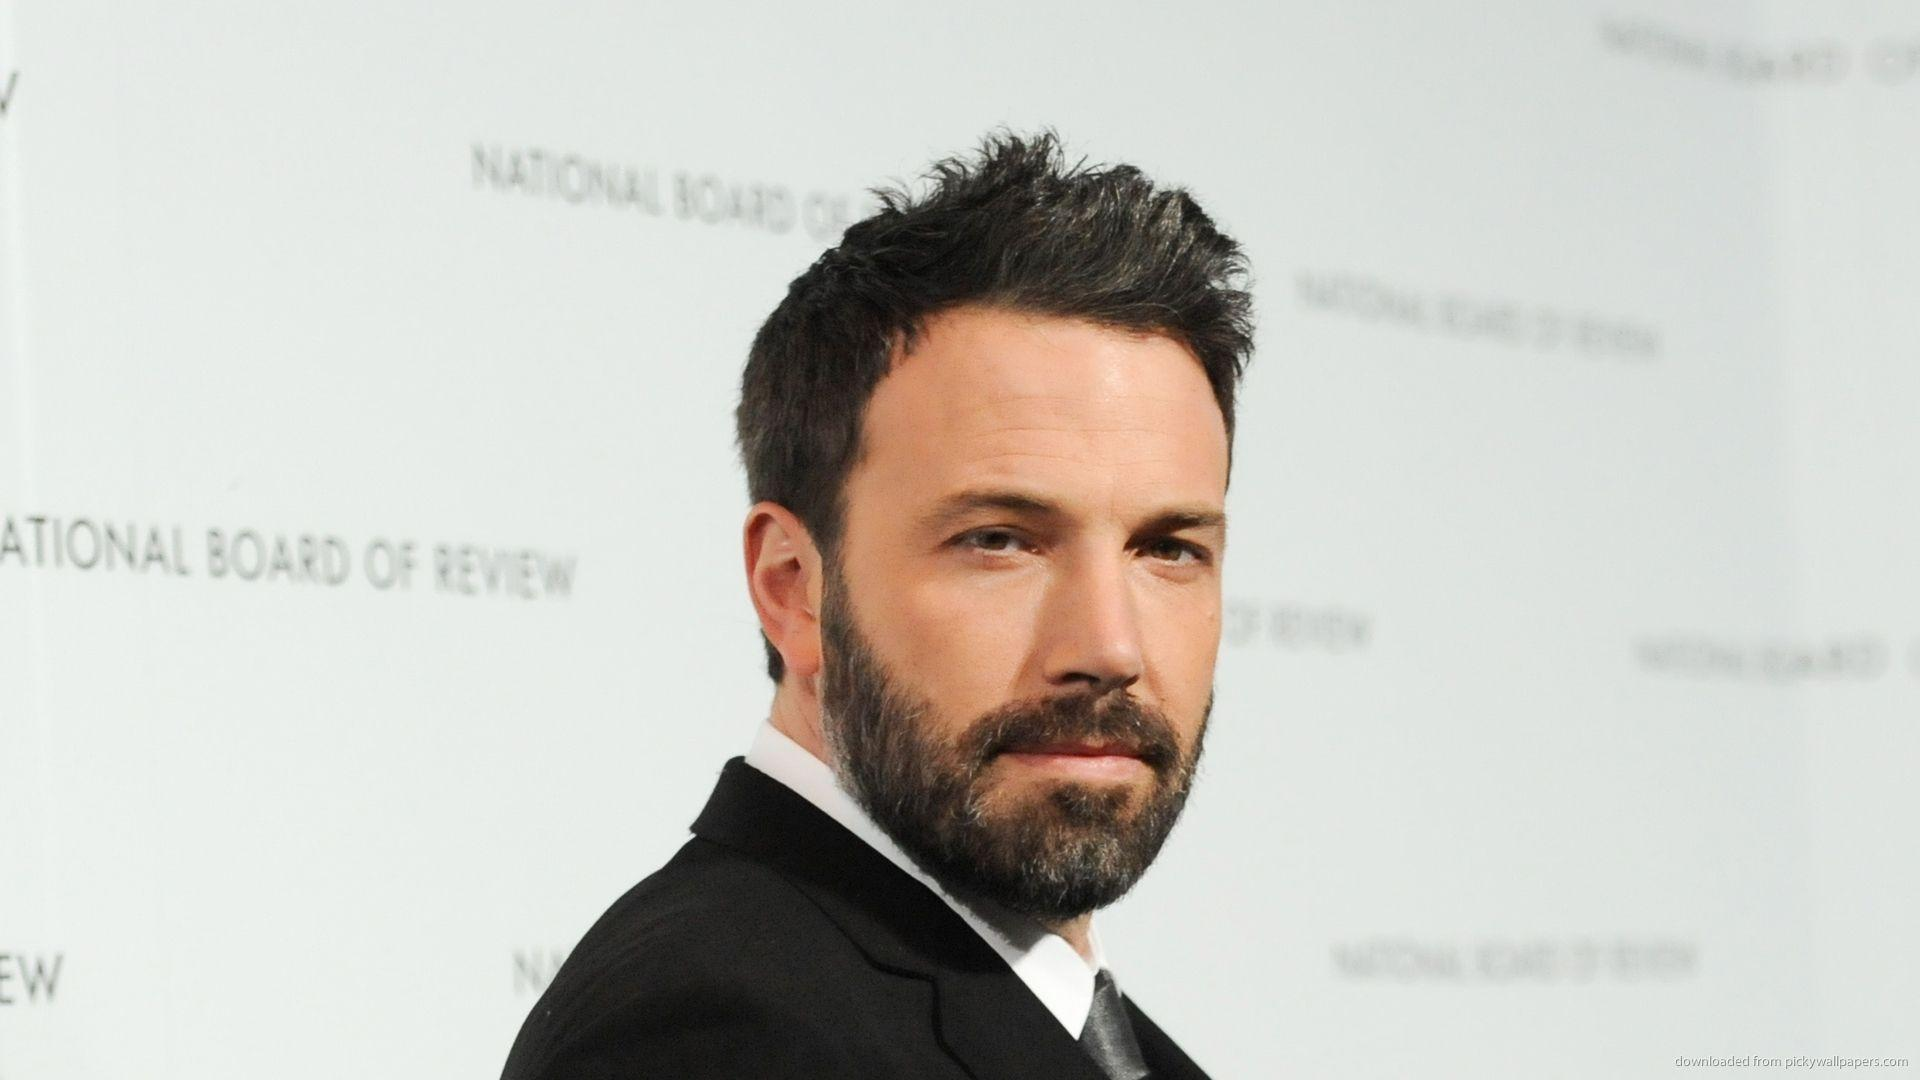 Download 1920x1080 Bearded Ben Affleck In Tuxedo Wallpapers